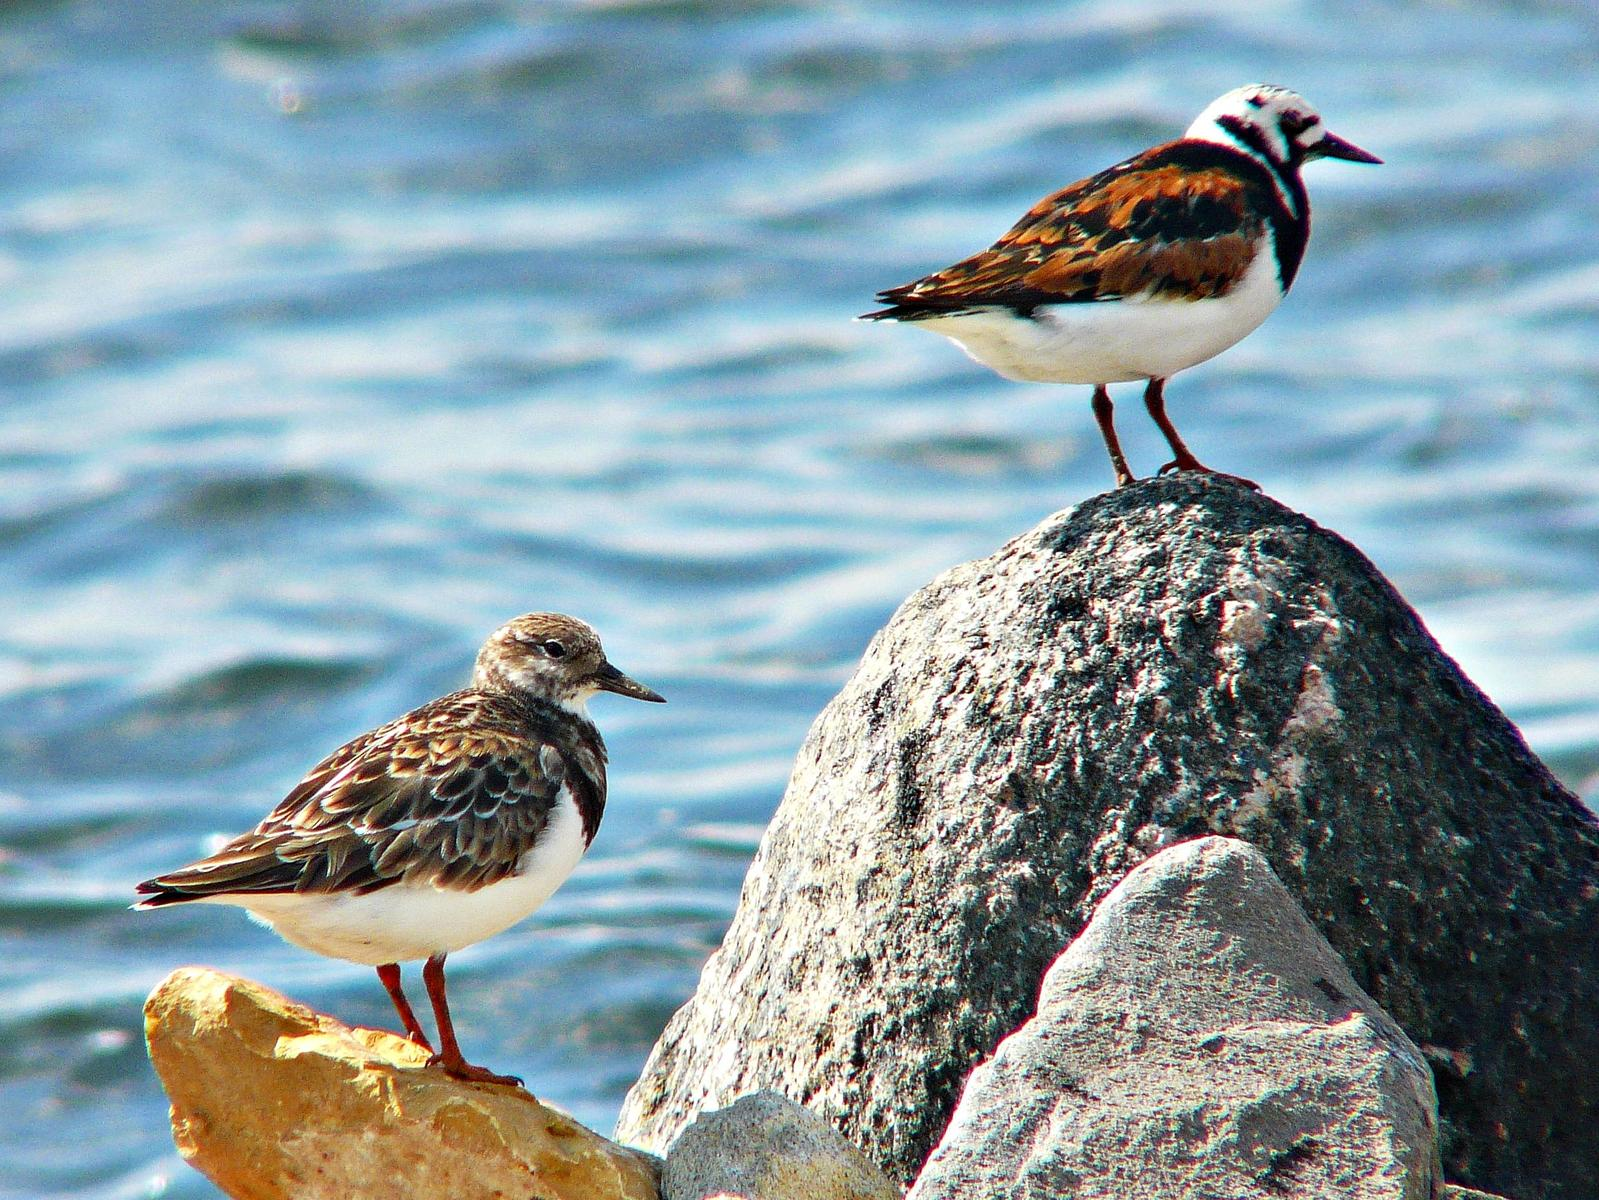 Ruddy Turnstone Photo by Bob Neugebauer